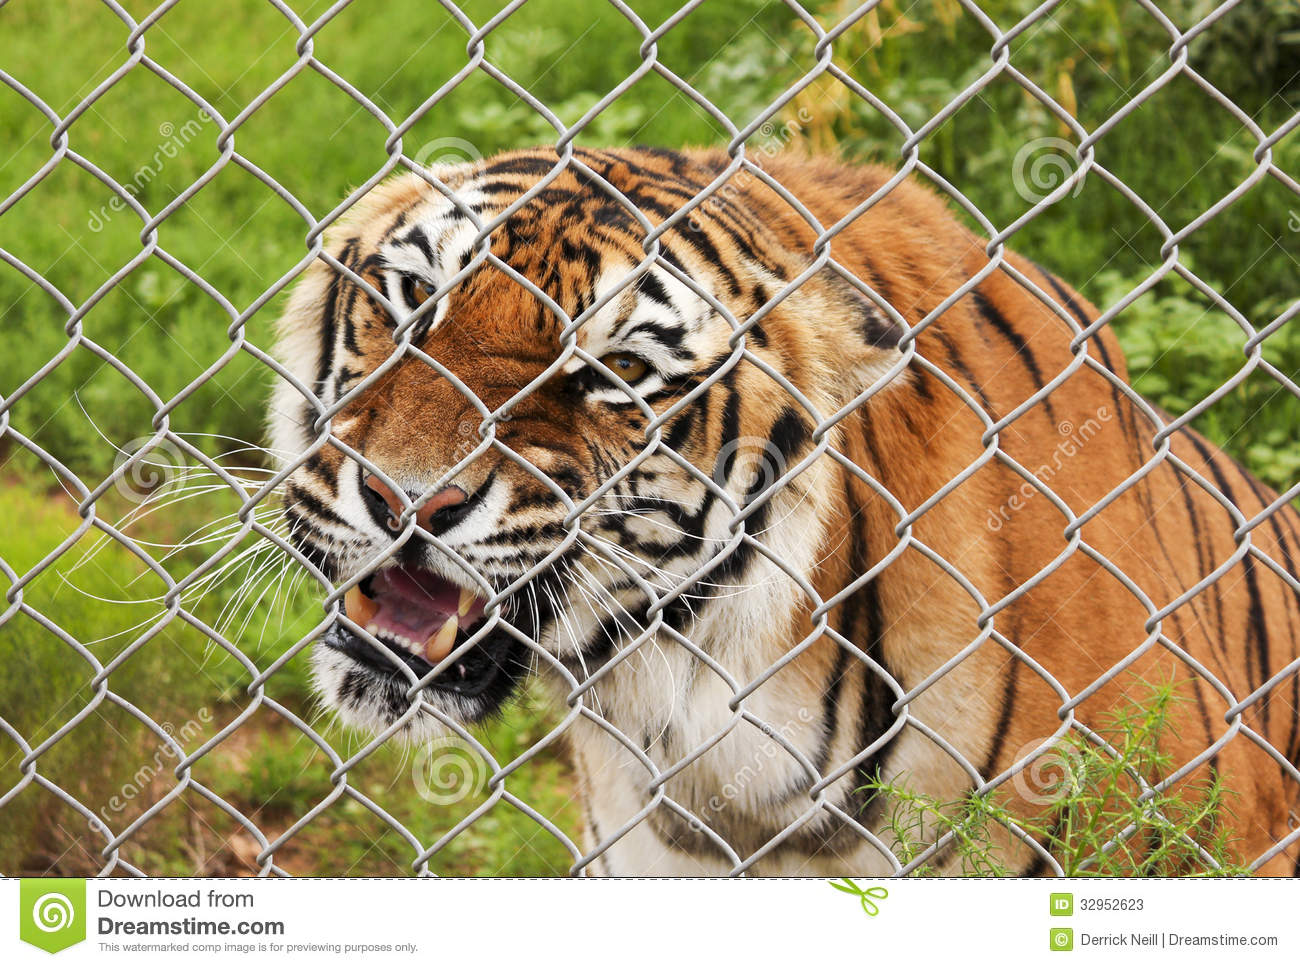 An Angry Bengal Tiger In A Zoo Cage Stock Photos - Image: 32952623